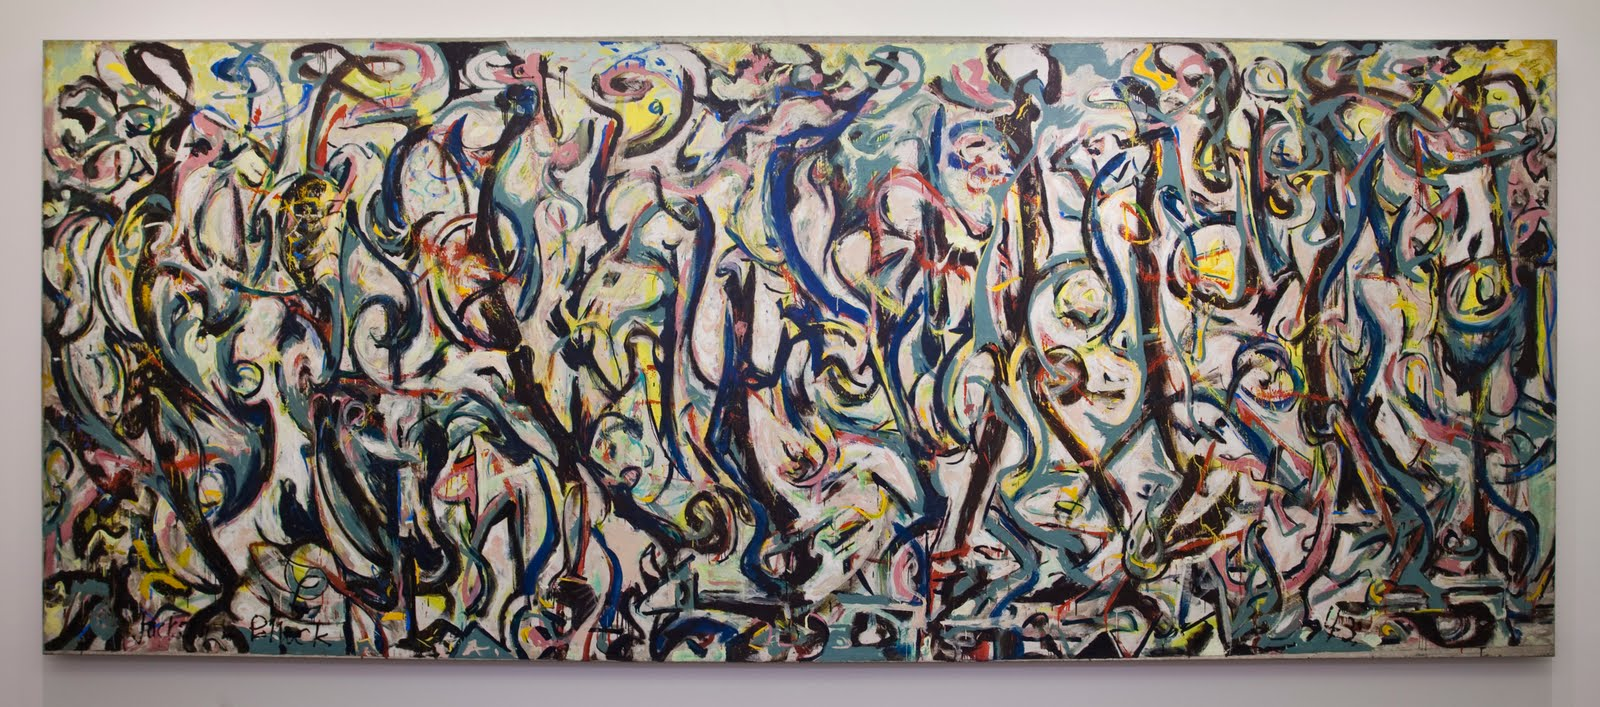 the common curator the value of jackson pollock 39 s mural ForMural Jackson Pollock